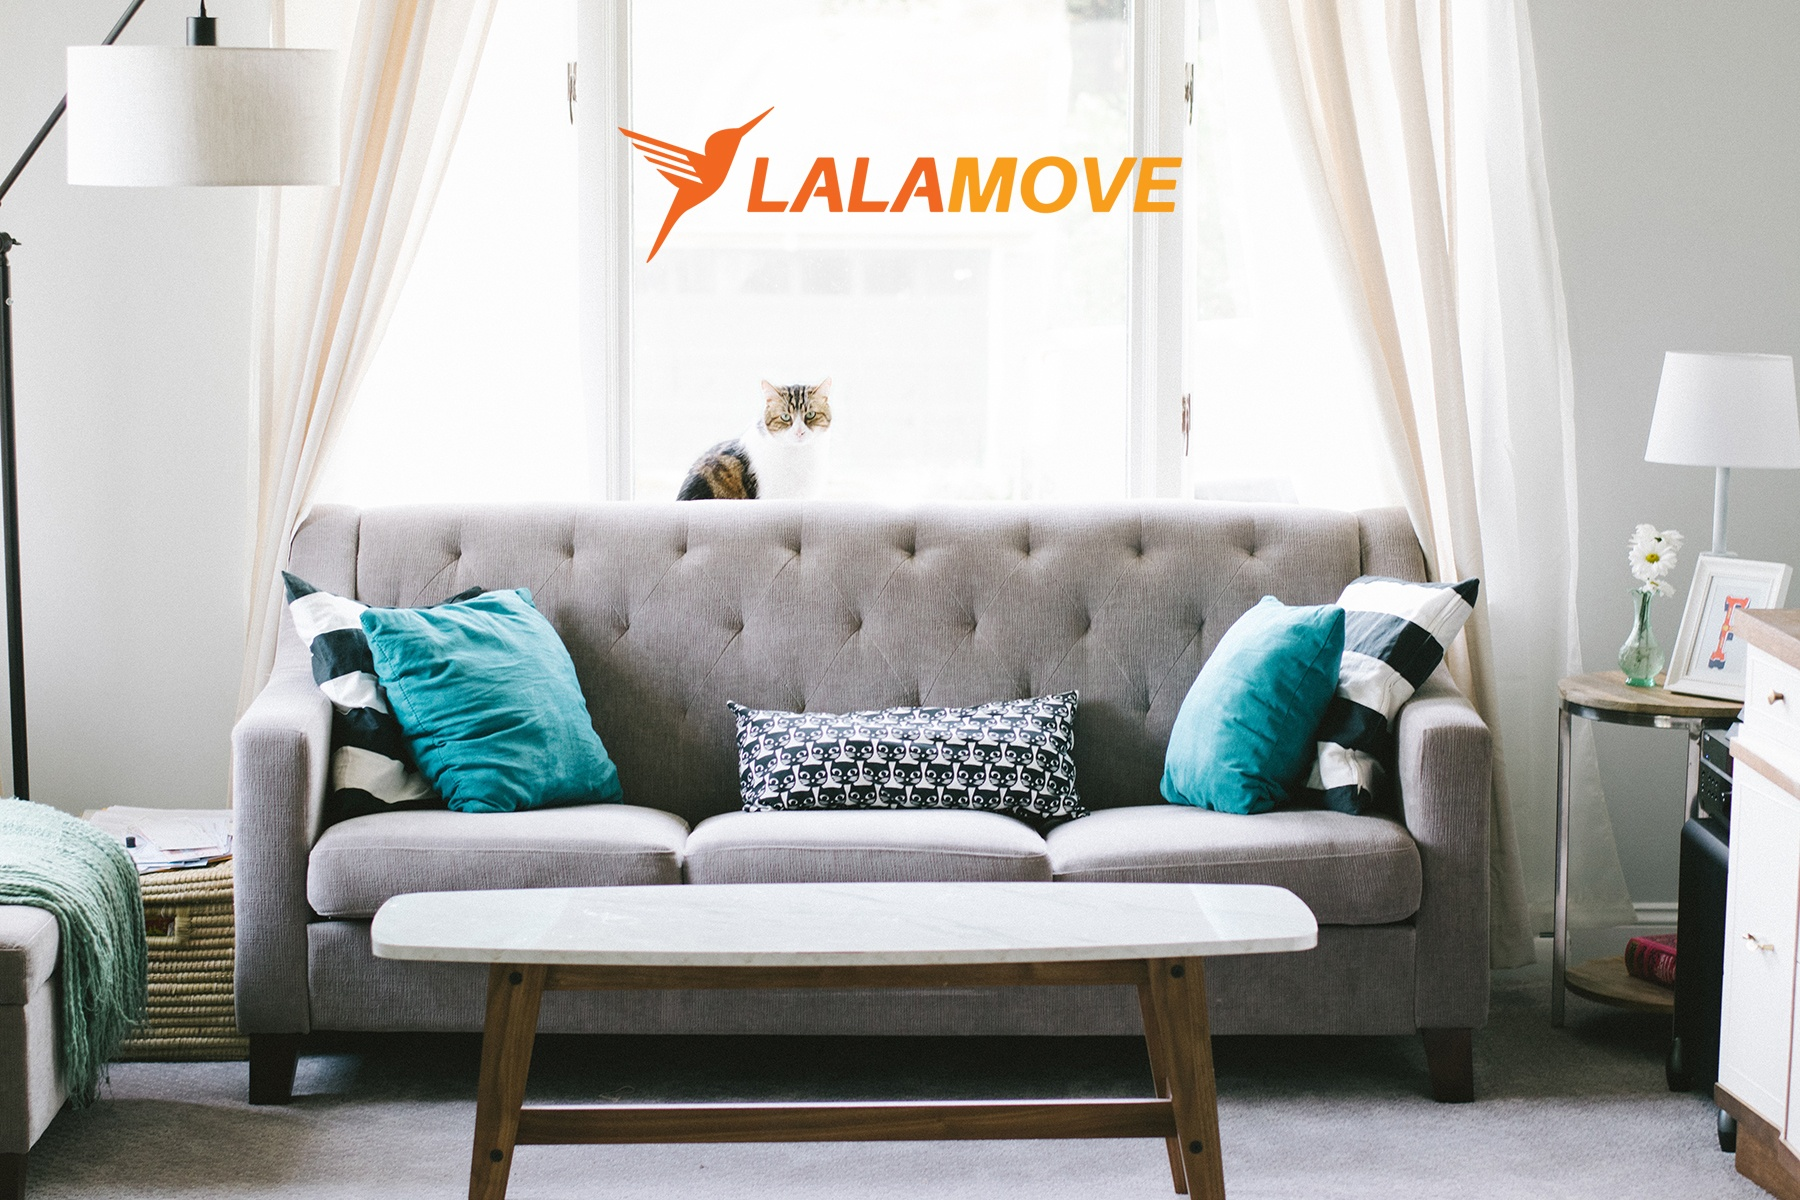 Used Lalamove At Ikea 6 Other Ways To Use The App